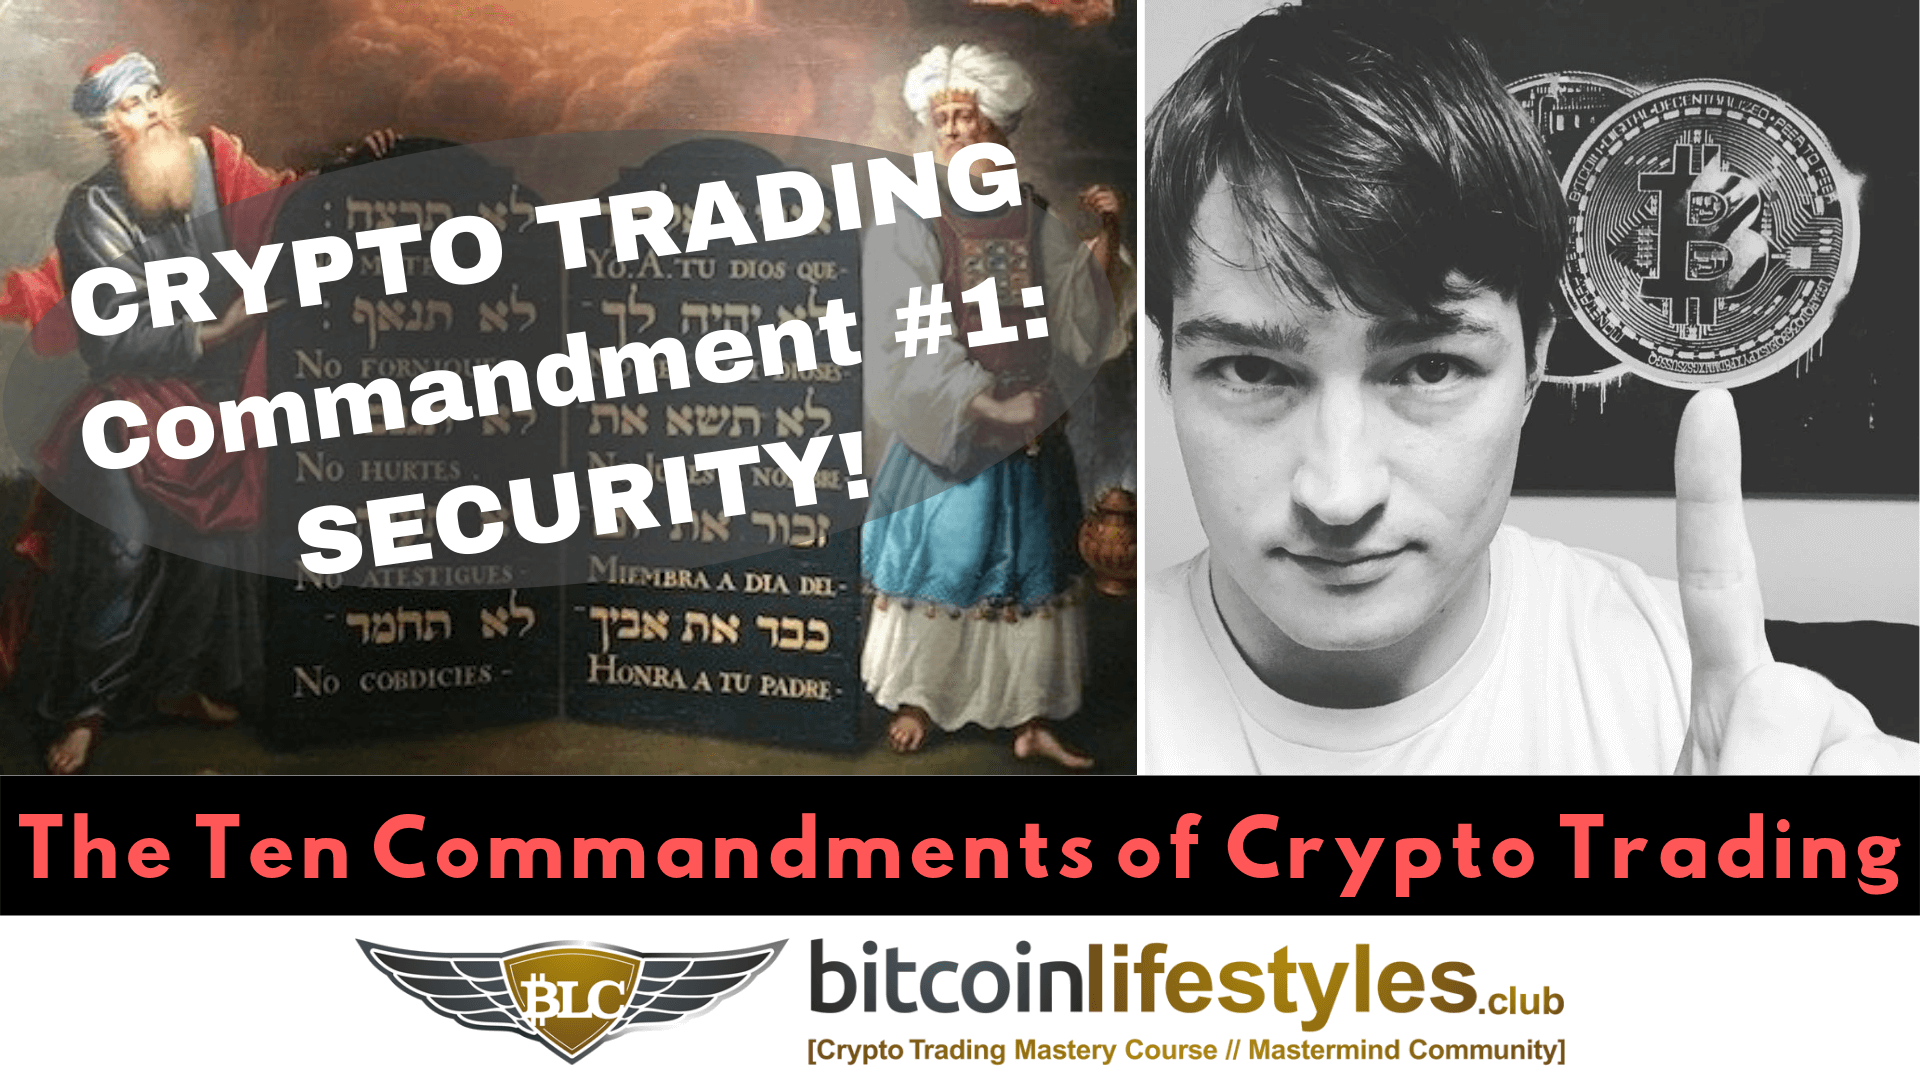 1st Crypto Trading Commandment: Thou Shalt Exercise Best Security Practices